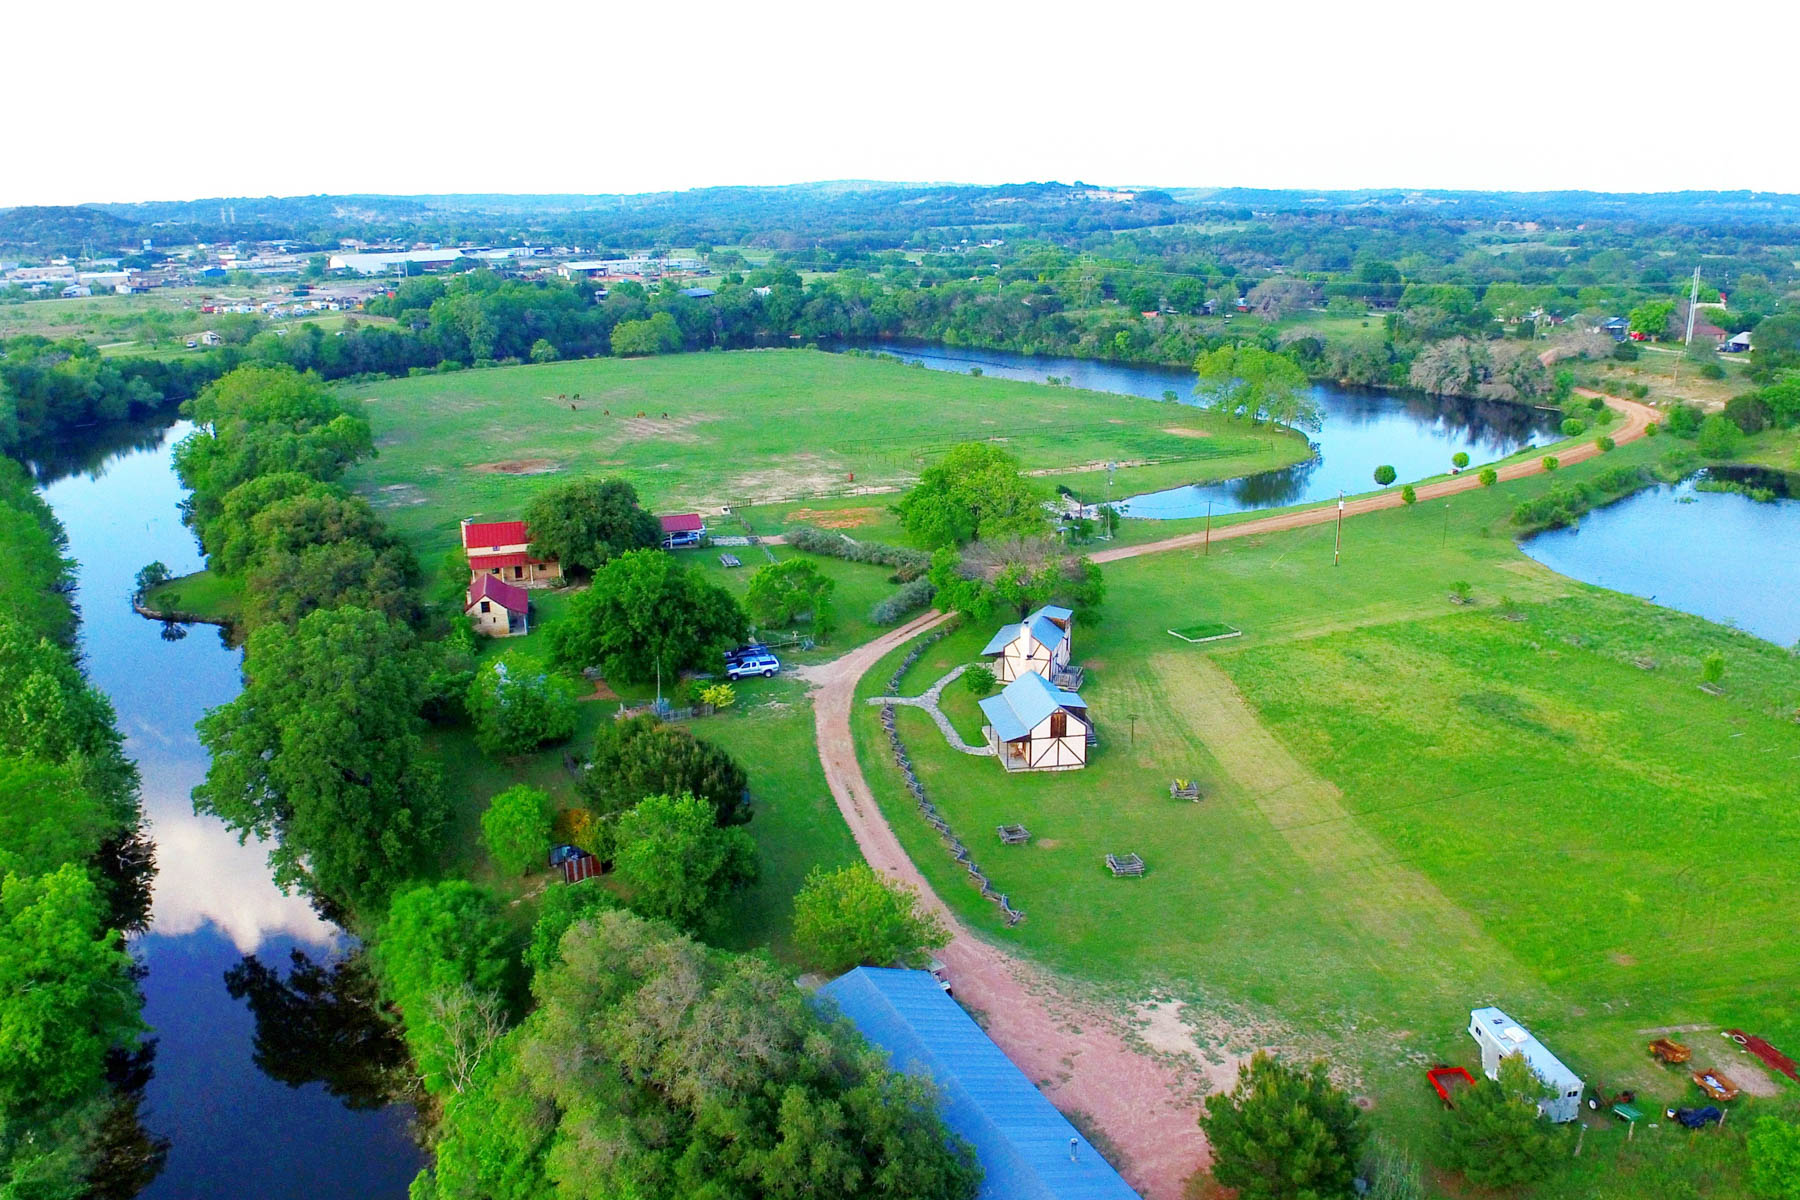 Single Family Home for Sale at Amazing Fredericksburg Property on 36-/+ Acres 457 Bob Moritz Fredericksburg, Texas 78624 United States